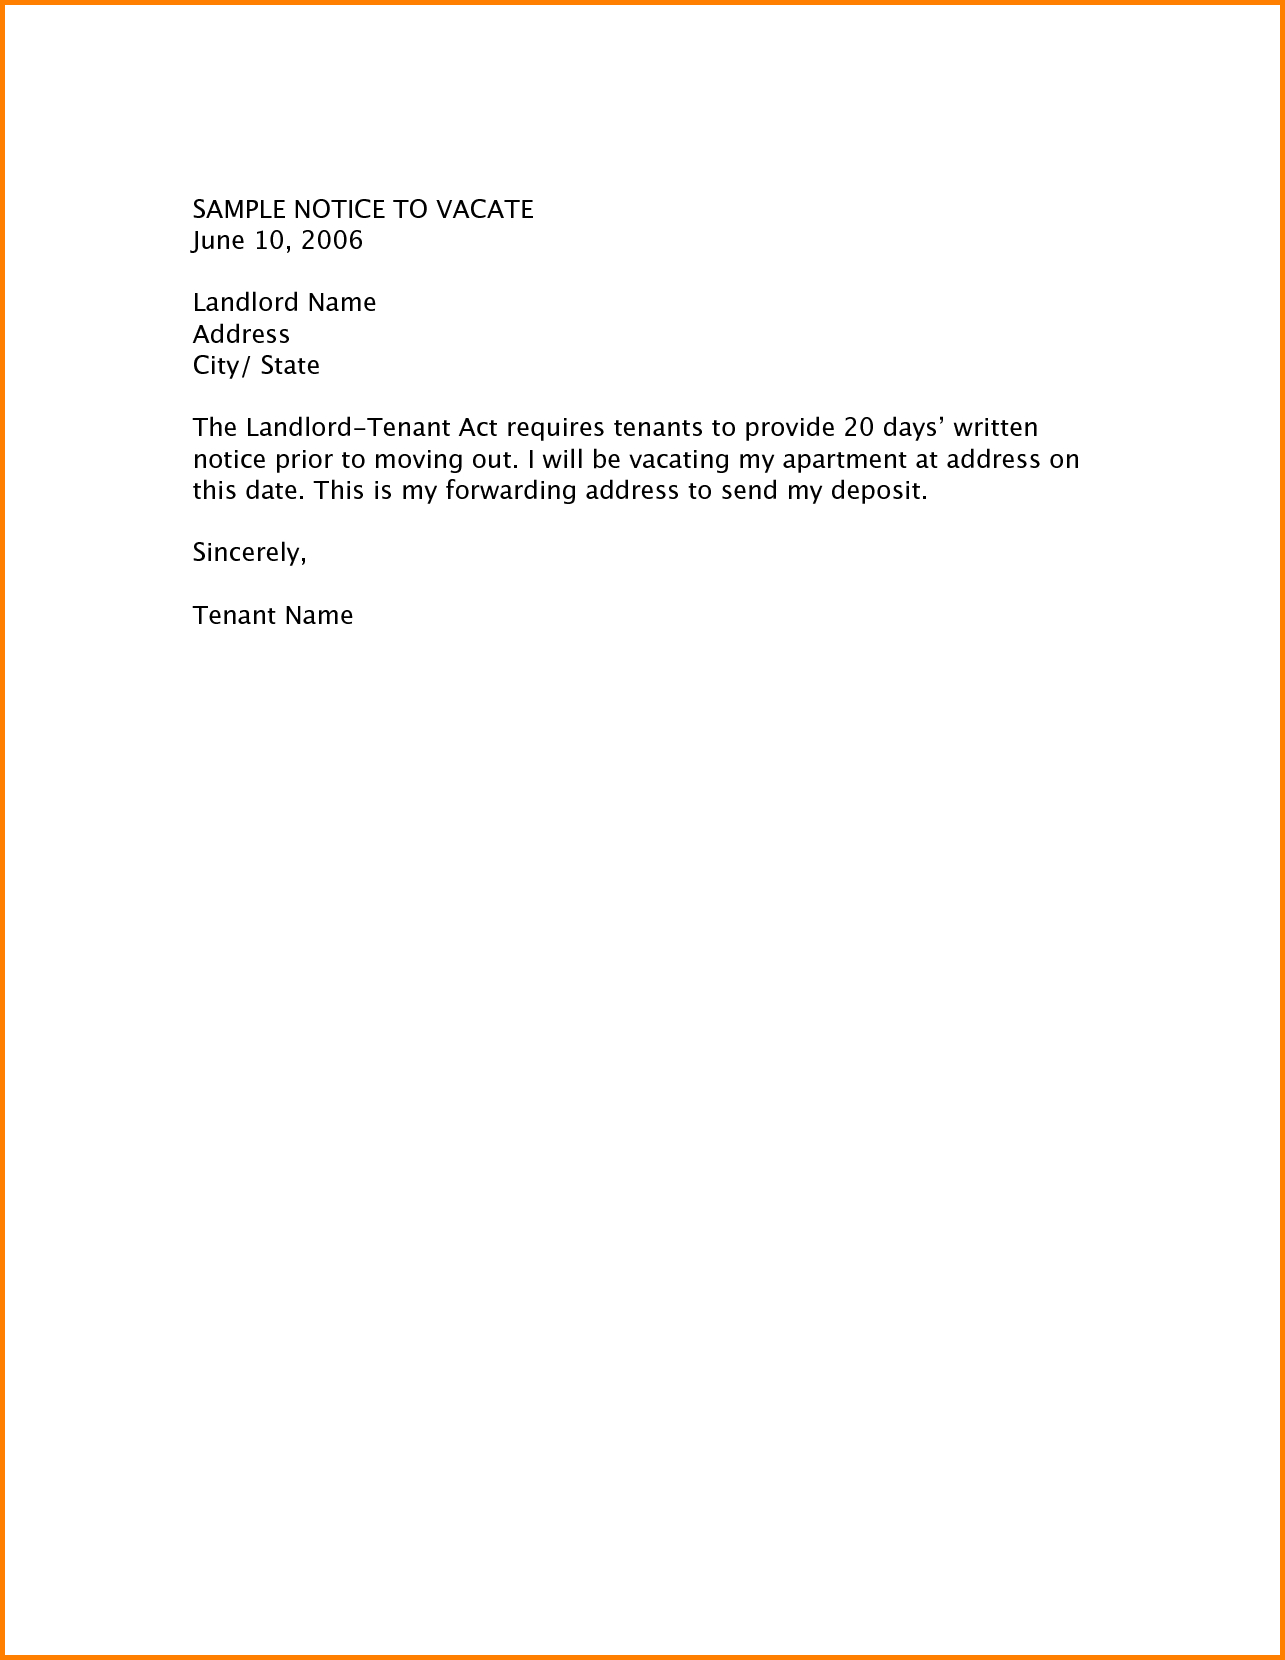 Notice to Vacate Apartment Letter Template - Beautiful Letter Template Vacating Property Pics Plete Intent to